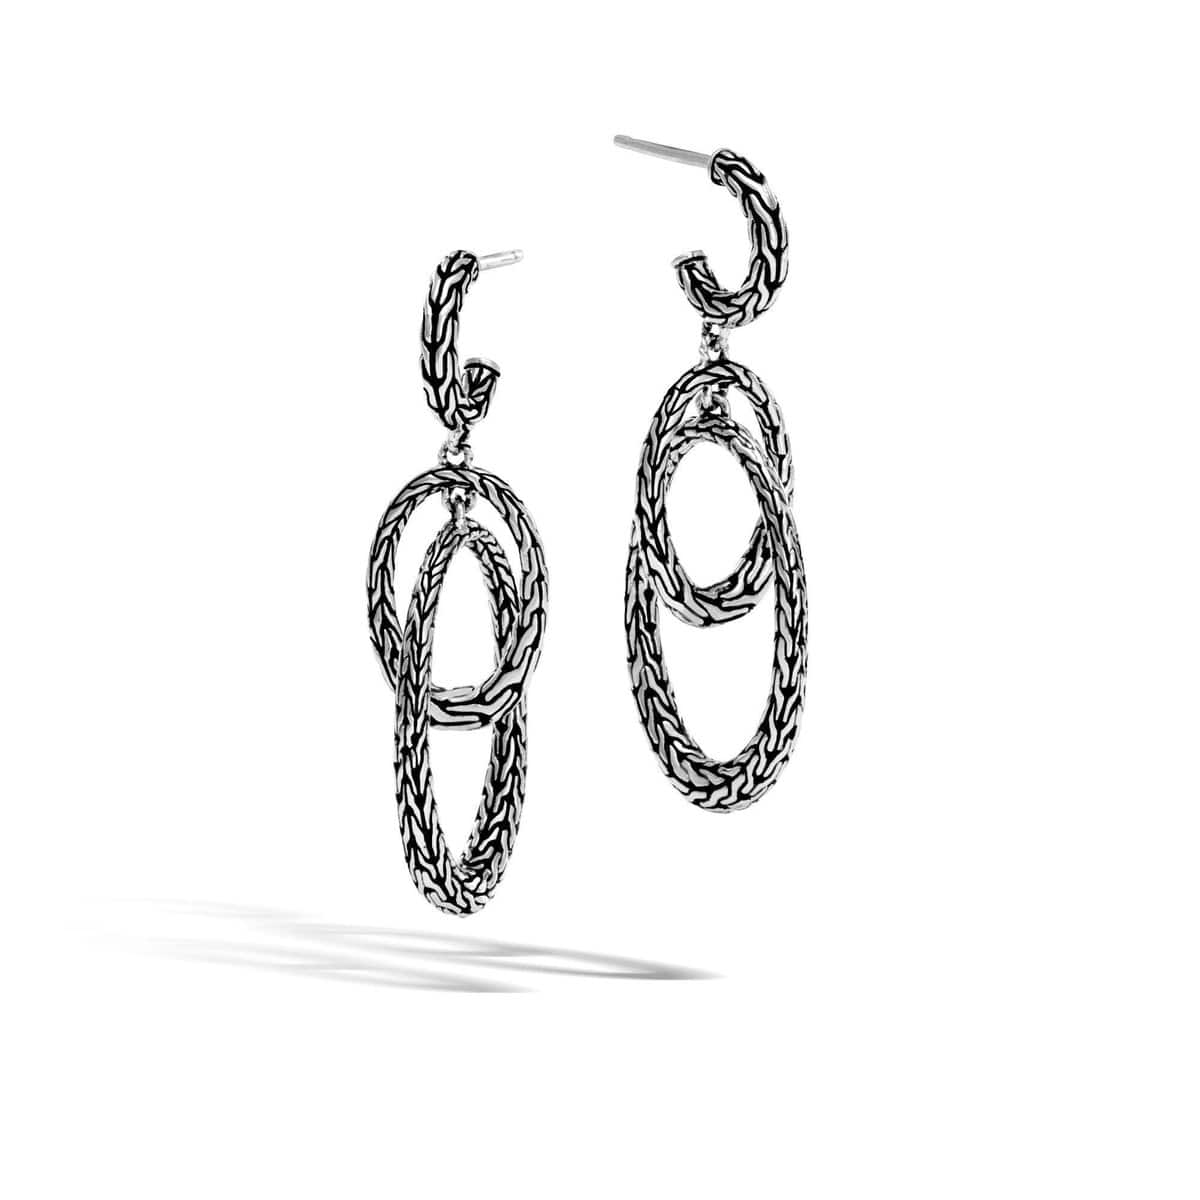 Classic Chain Silver Drop Earrings - EB996677-John Hardy-Renee Taylor Gallery